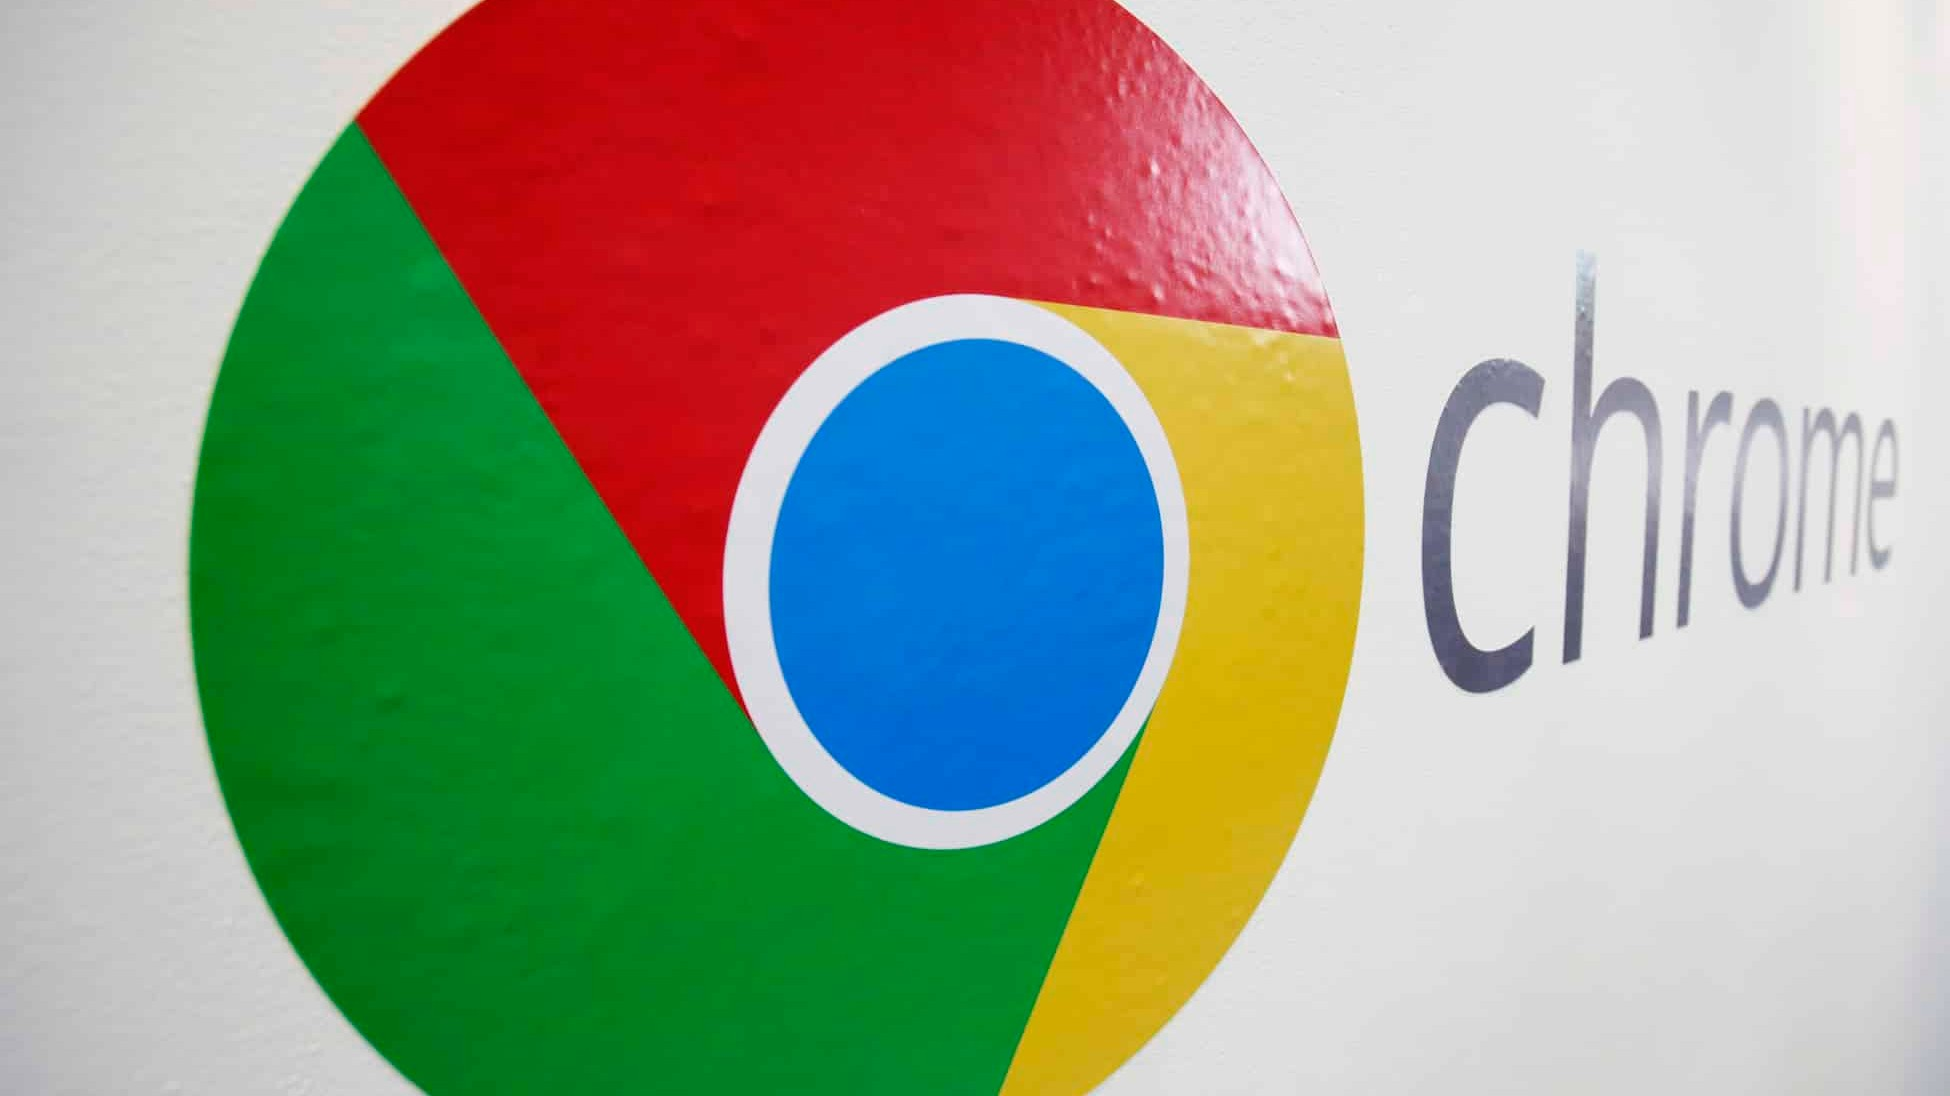 Google's new ad blocker could upend the web publishing business. Don't expect the U.S. to get in its way.